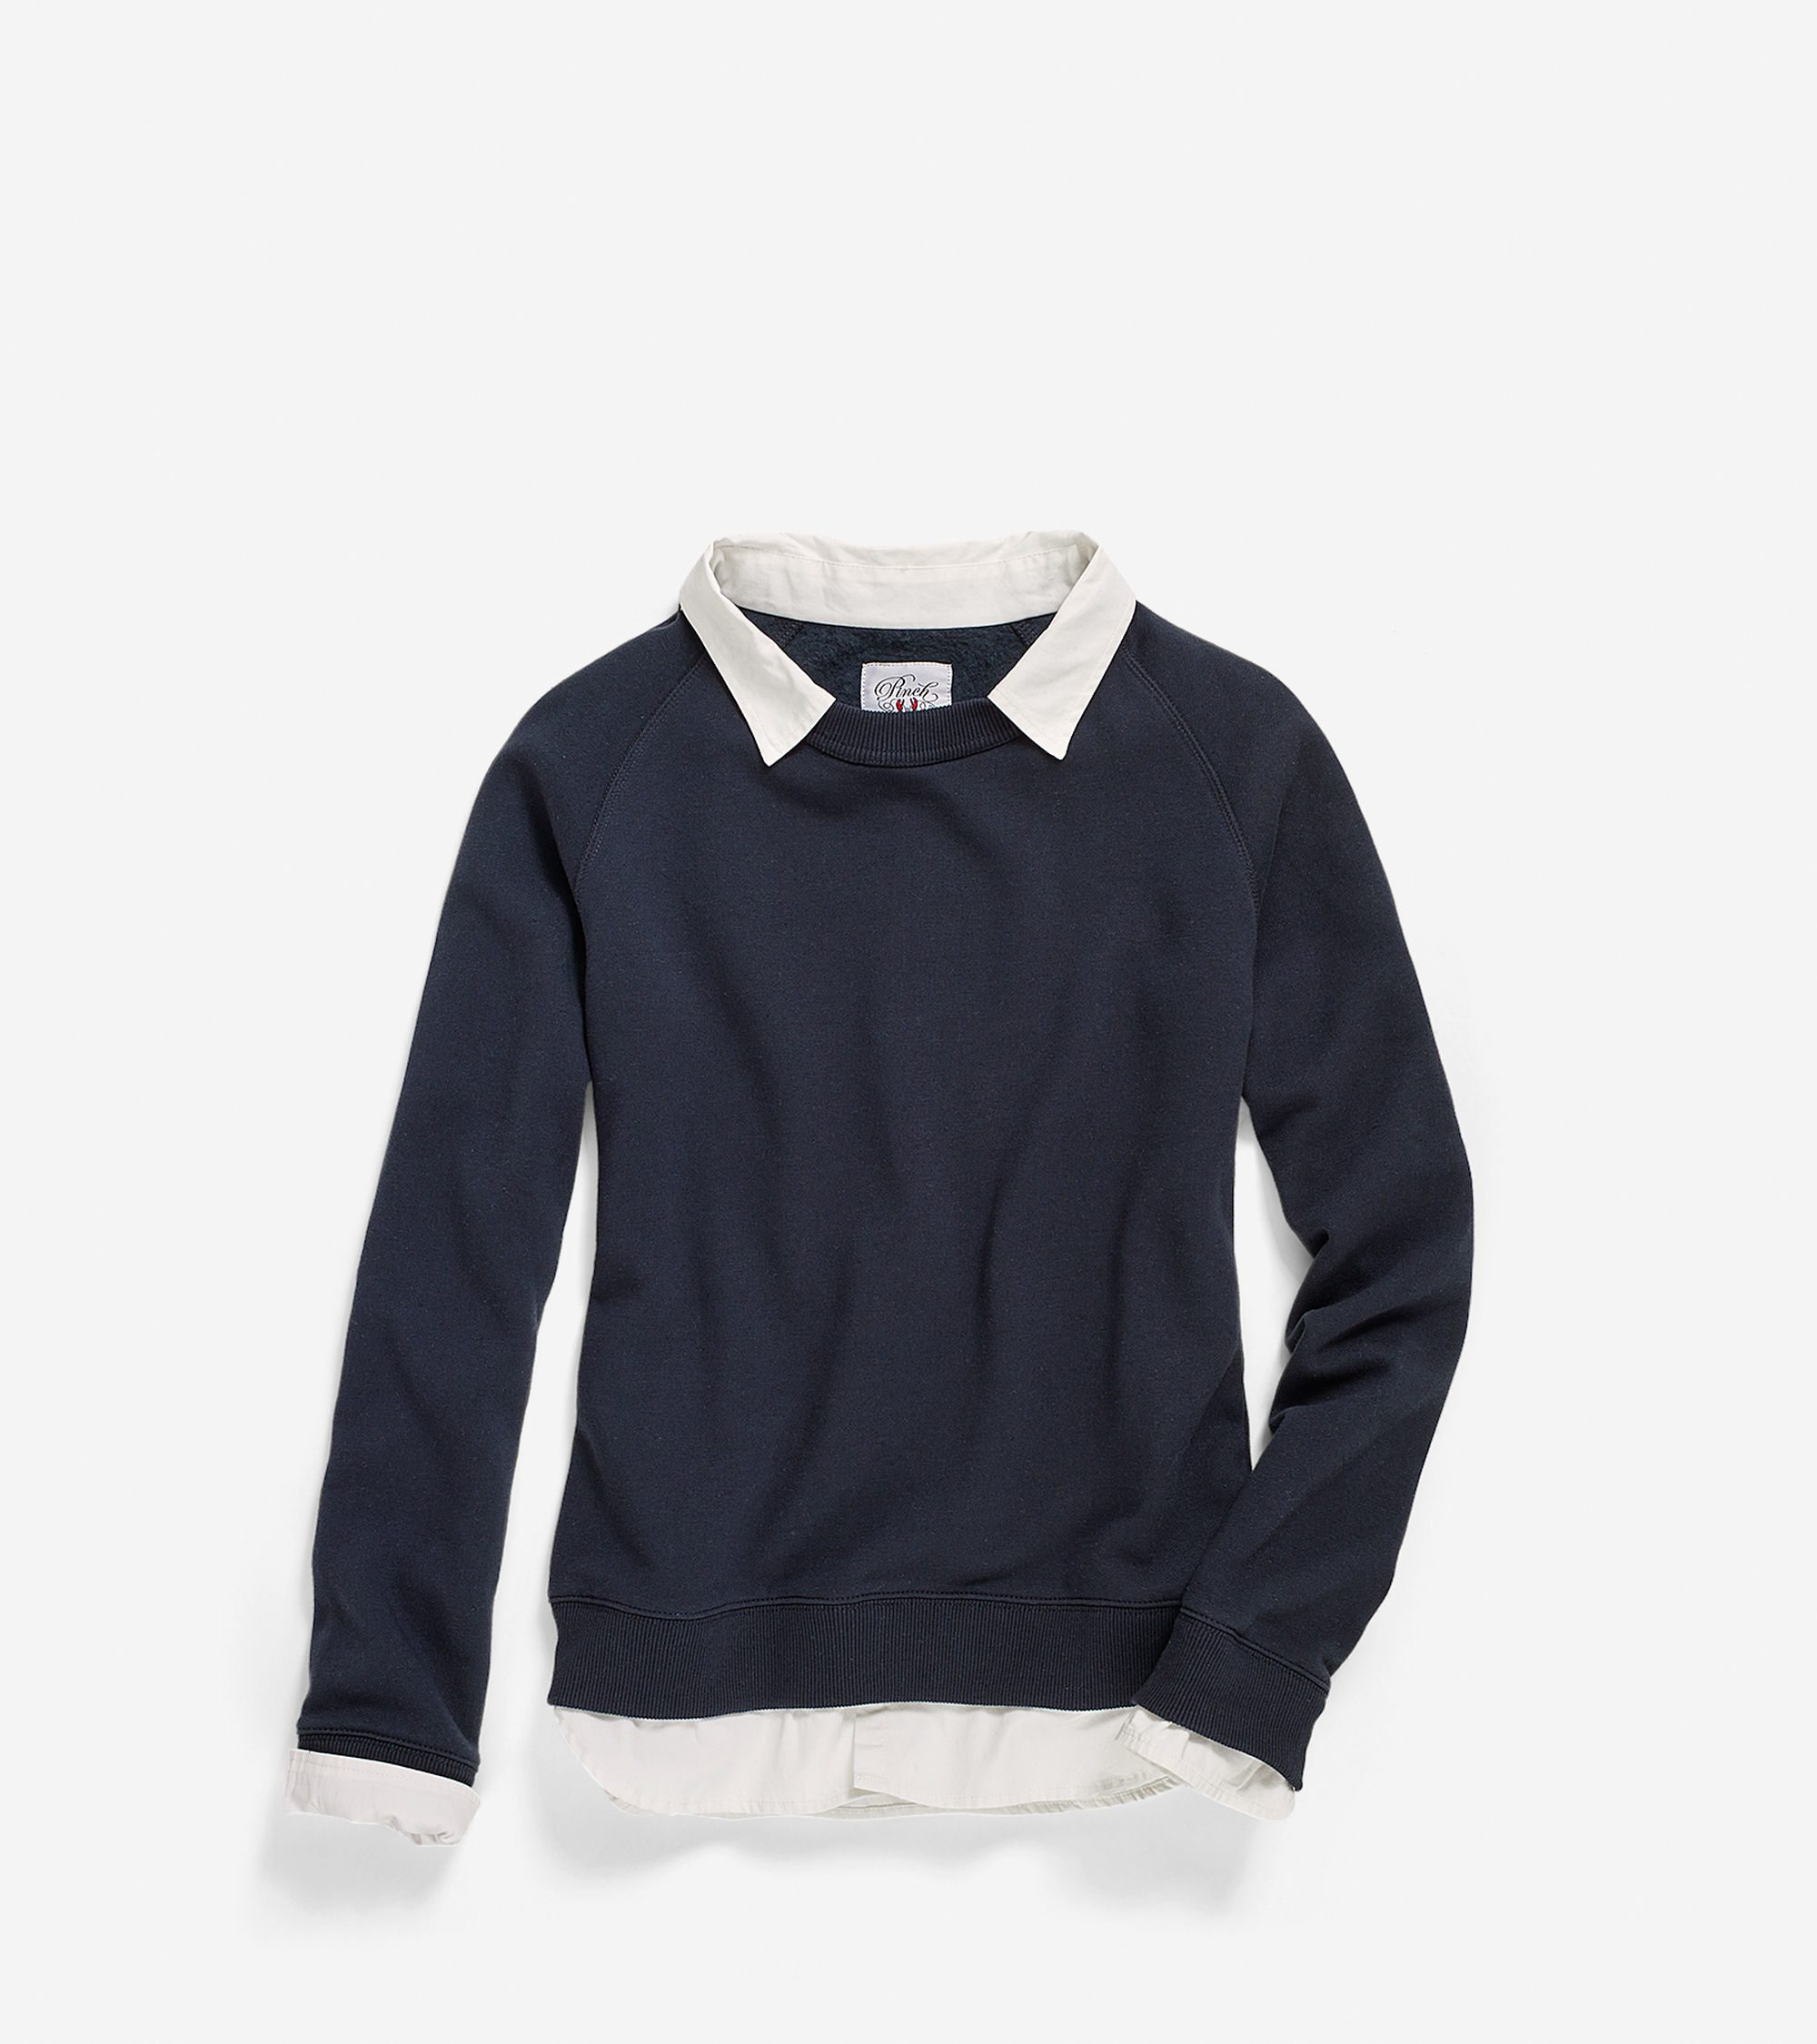 Dark Blue Sweaters for Women | Dress images